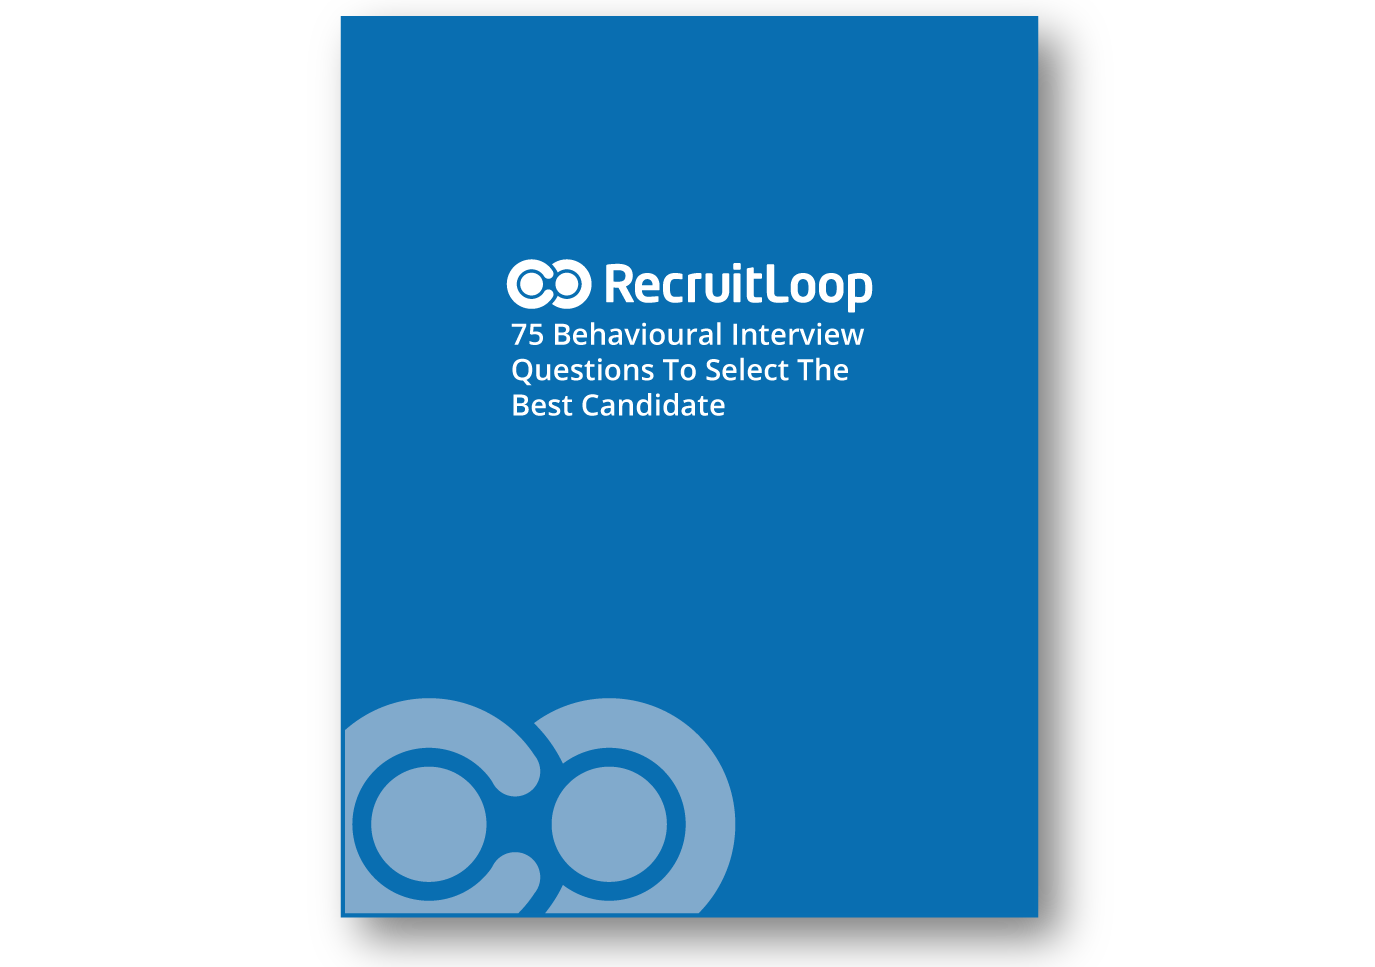 http://blog.recruitloop.com/wp-content/uploads/2016/04/75-Questions_366x232_366x232_366x232-1.png